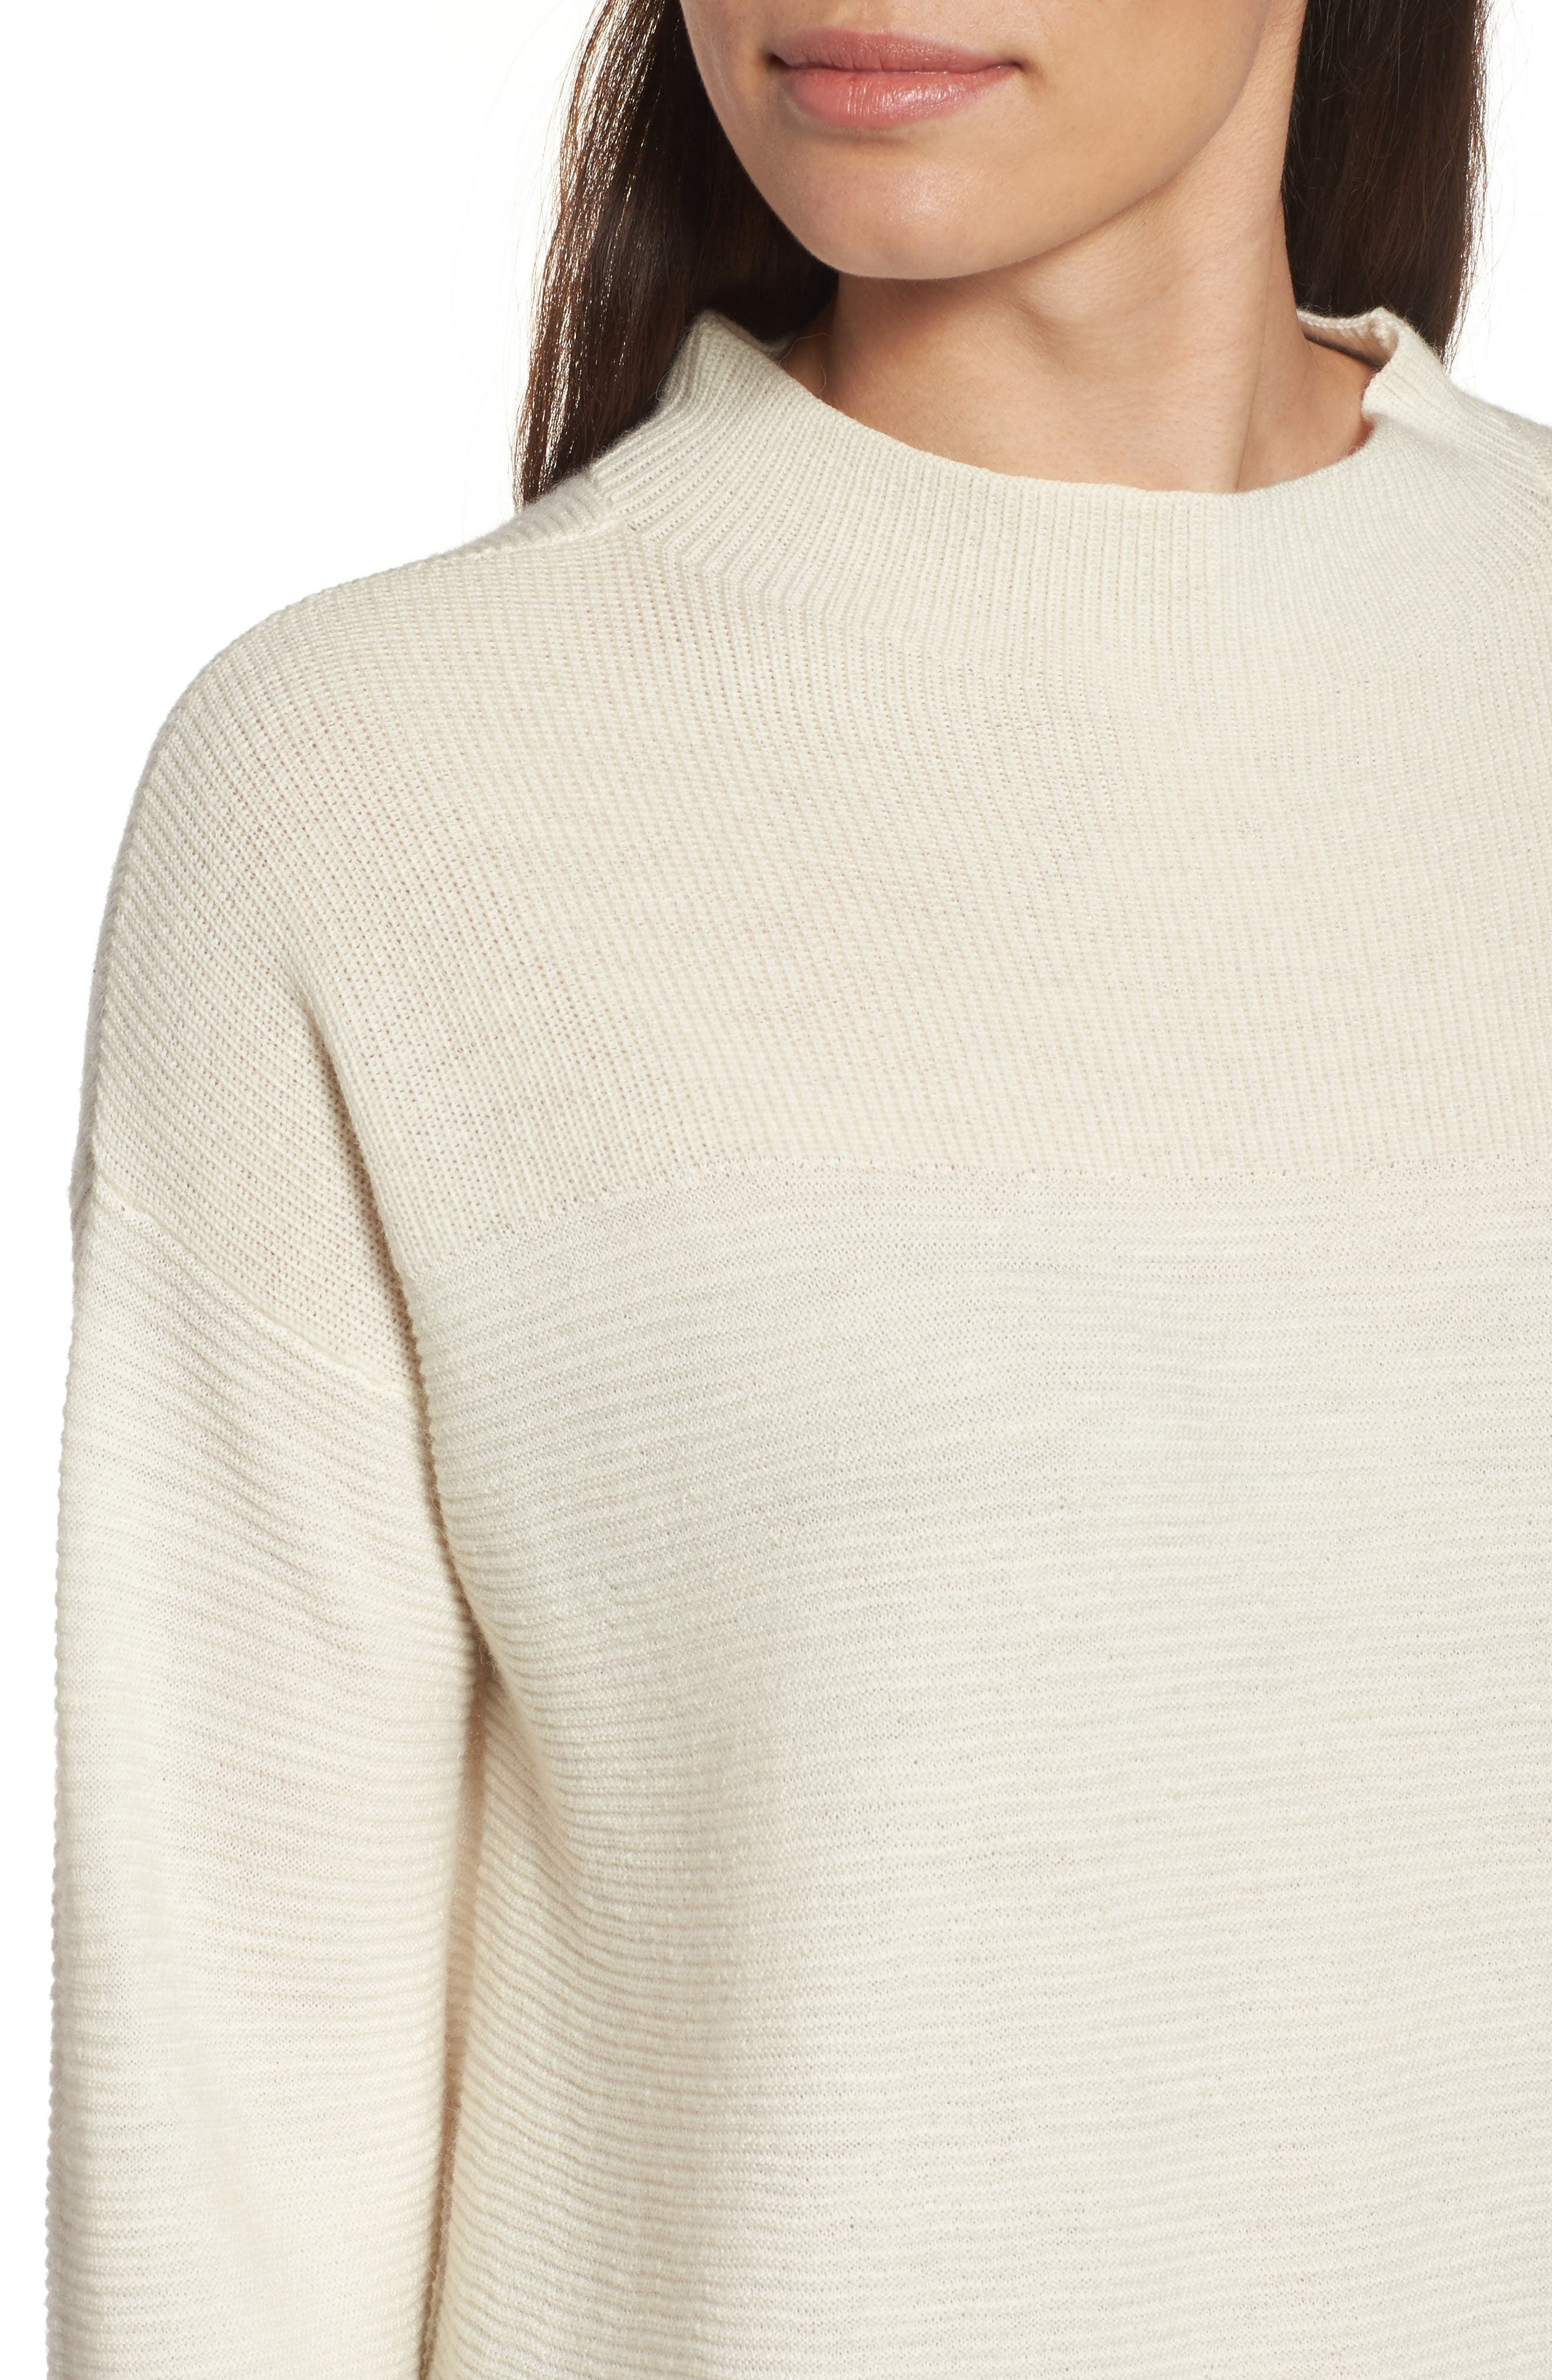 Ribbed Wool Blend Sweater,                             Alternate thumbnail 5, color,                             Soft White